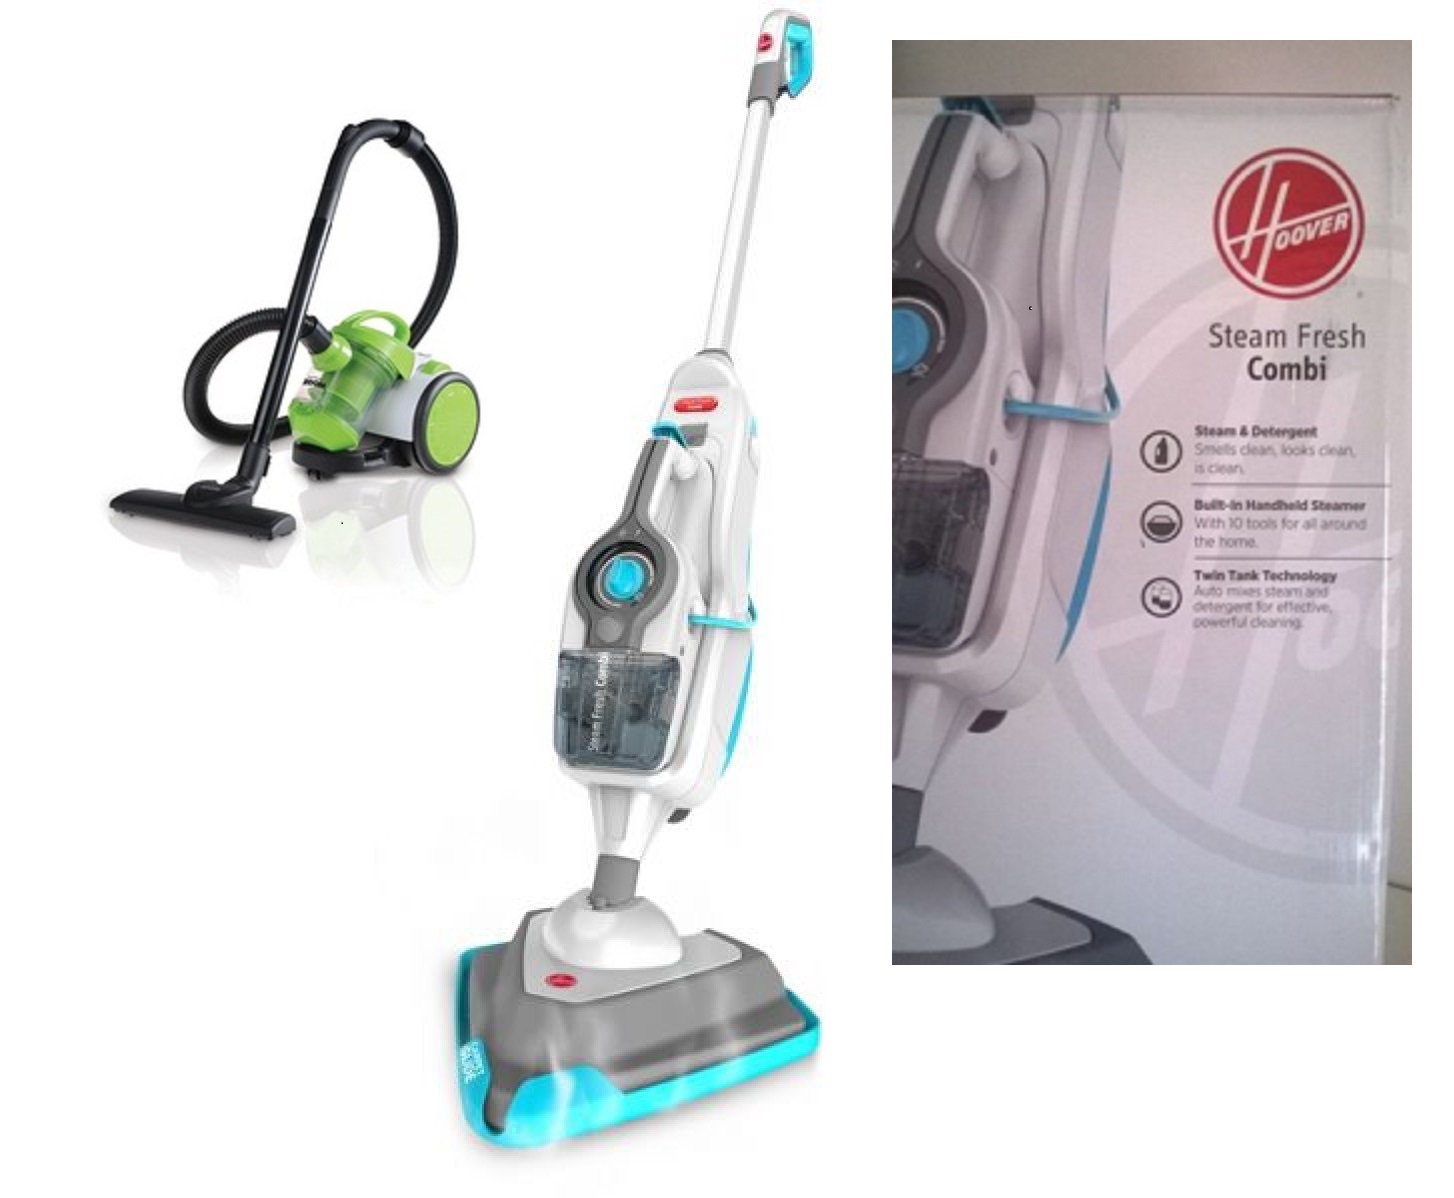 Bennett Read - Zoom compact Cannister Vacuum Cleaner and Hoover HS86 SFC ZA Steam Fresh Combi Combo Deal